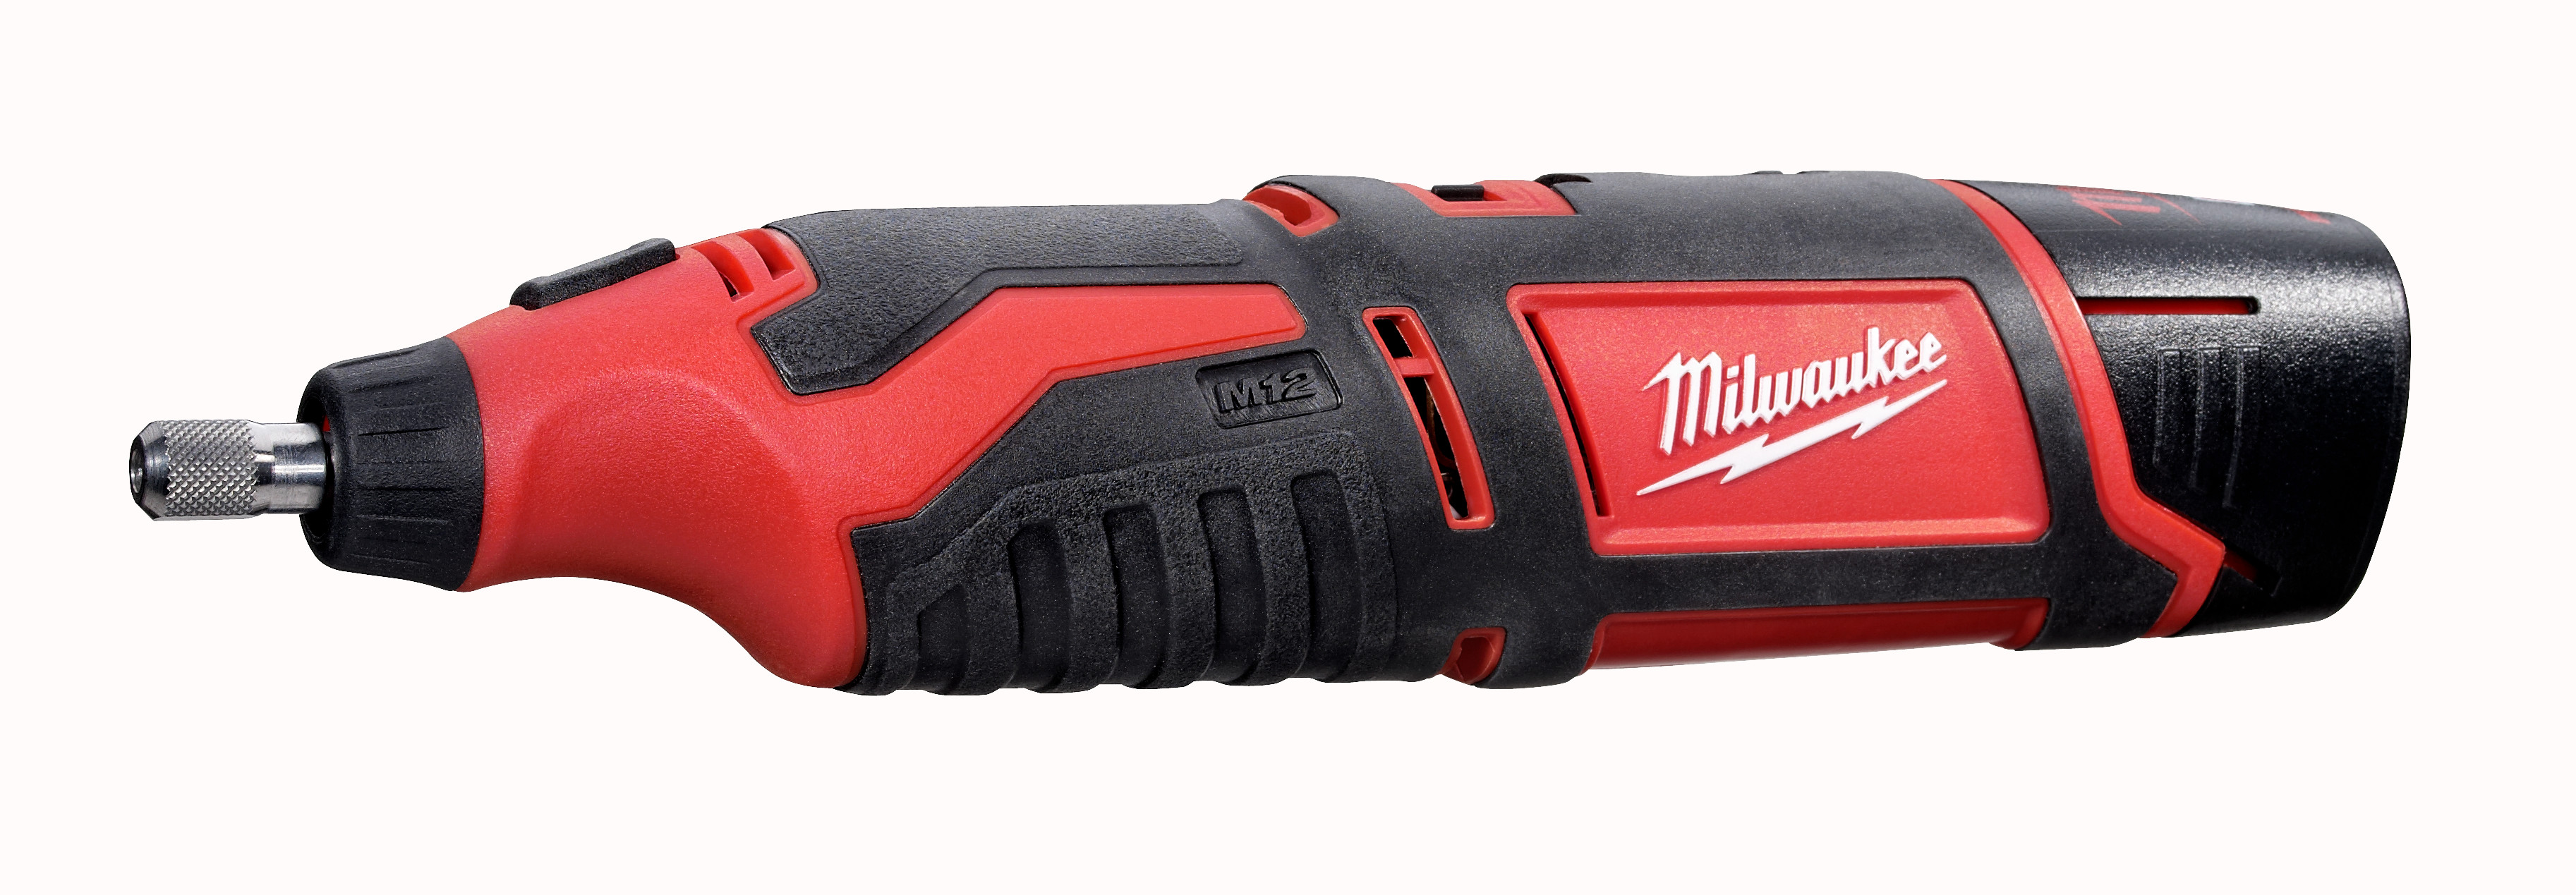 Milwaukee® M12™ 2460-21 Cordless Rotary Tool Kit, 12 VDC, 5000 to 32000 rpm Speed, Lithium-Ion Battery, Slide On/Off with Speed Dial Switch